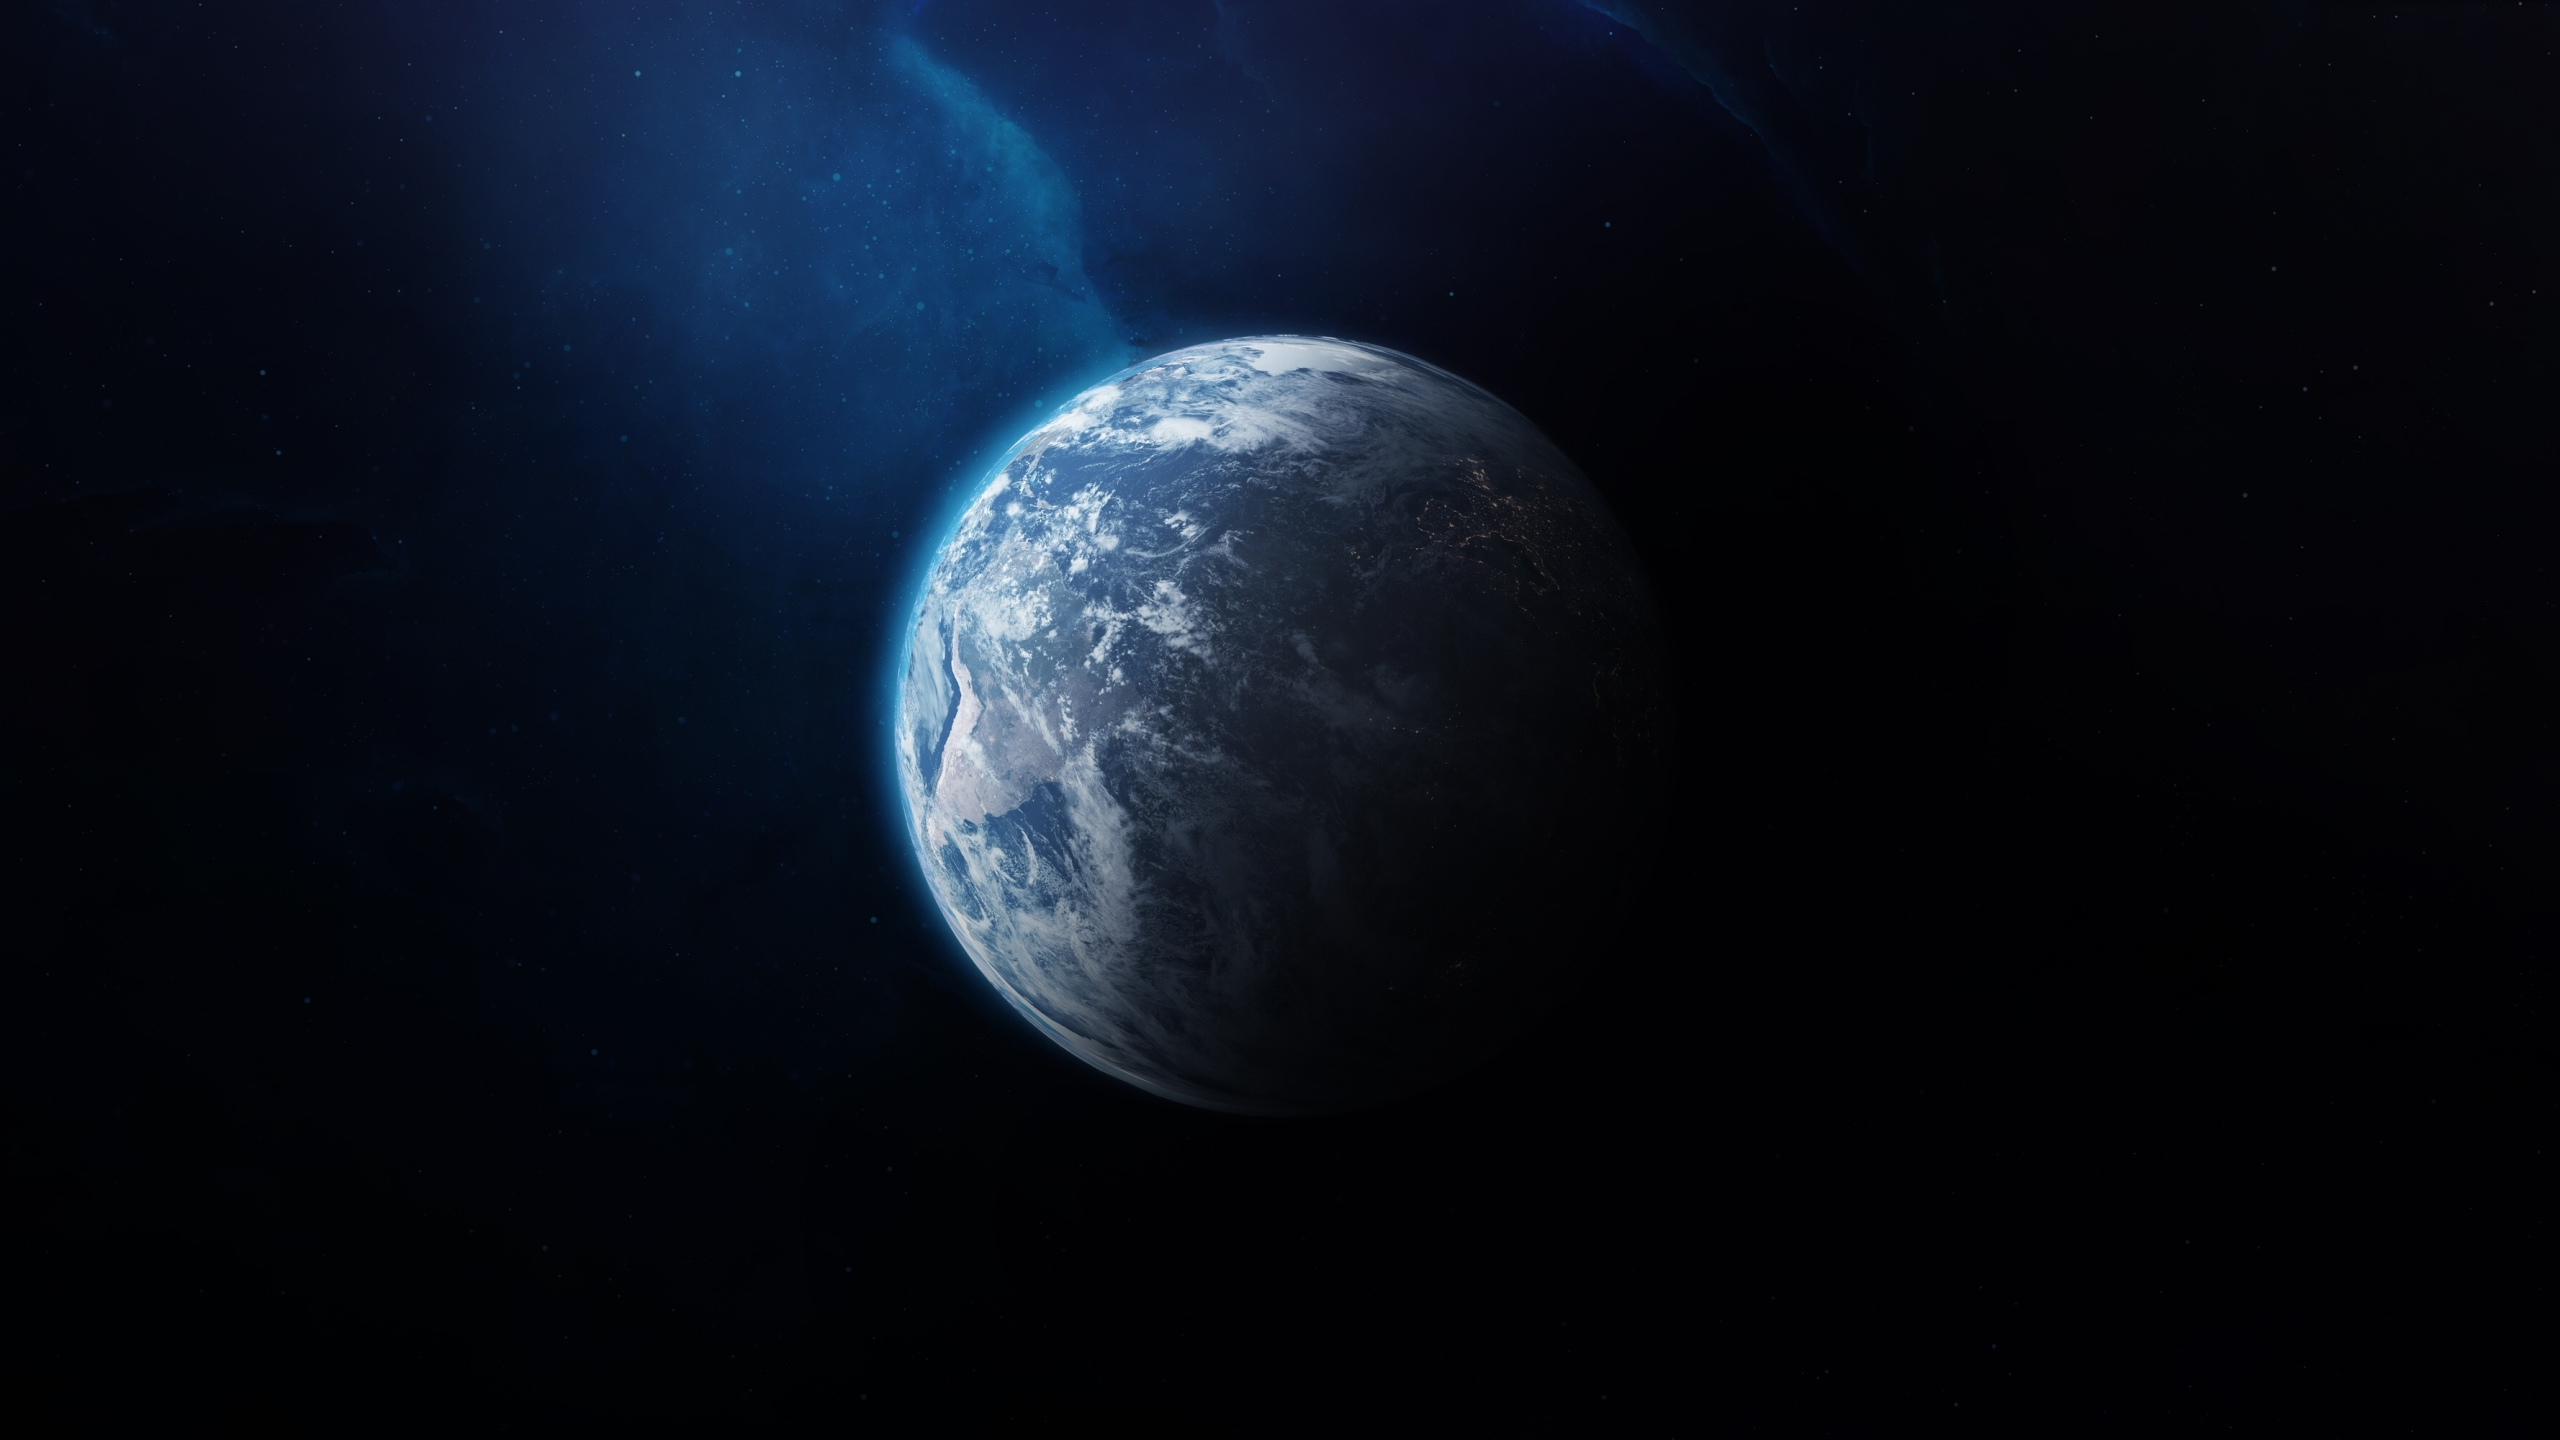 2560x1440 Earth From Outer Space 1440p Resolution Wallpaper Hd